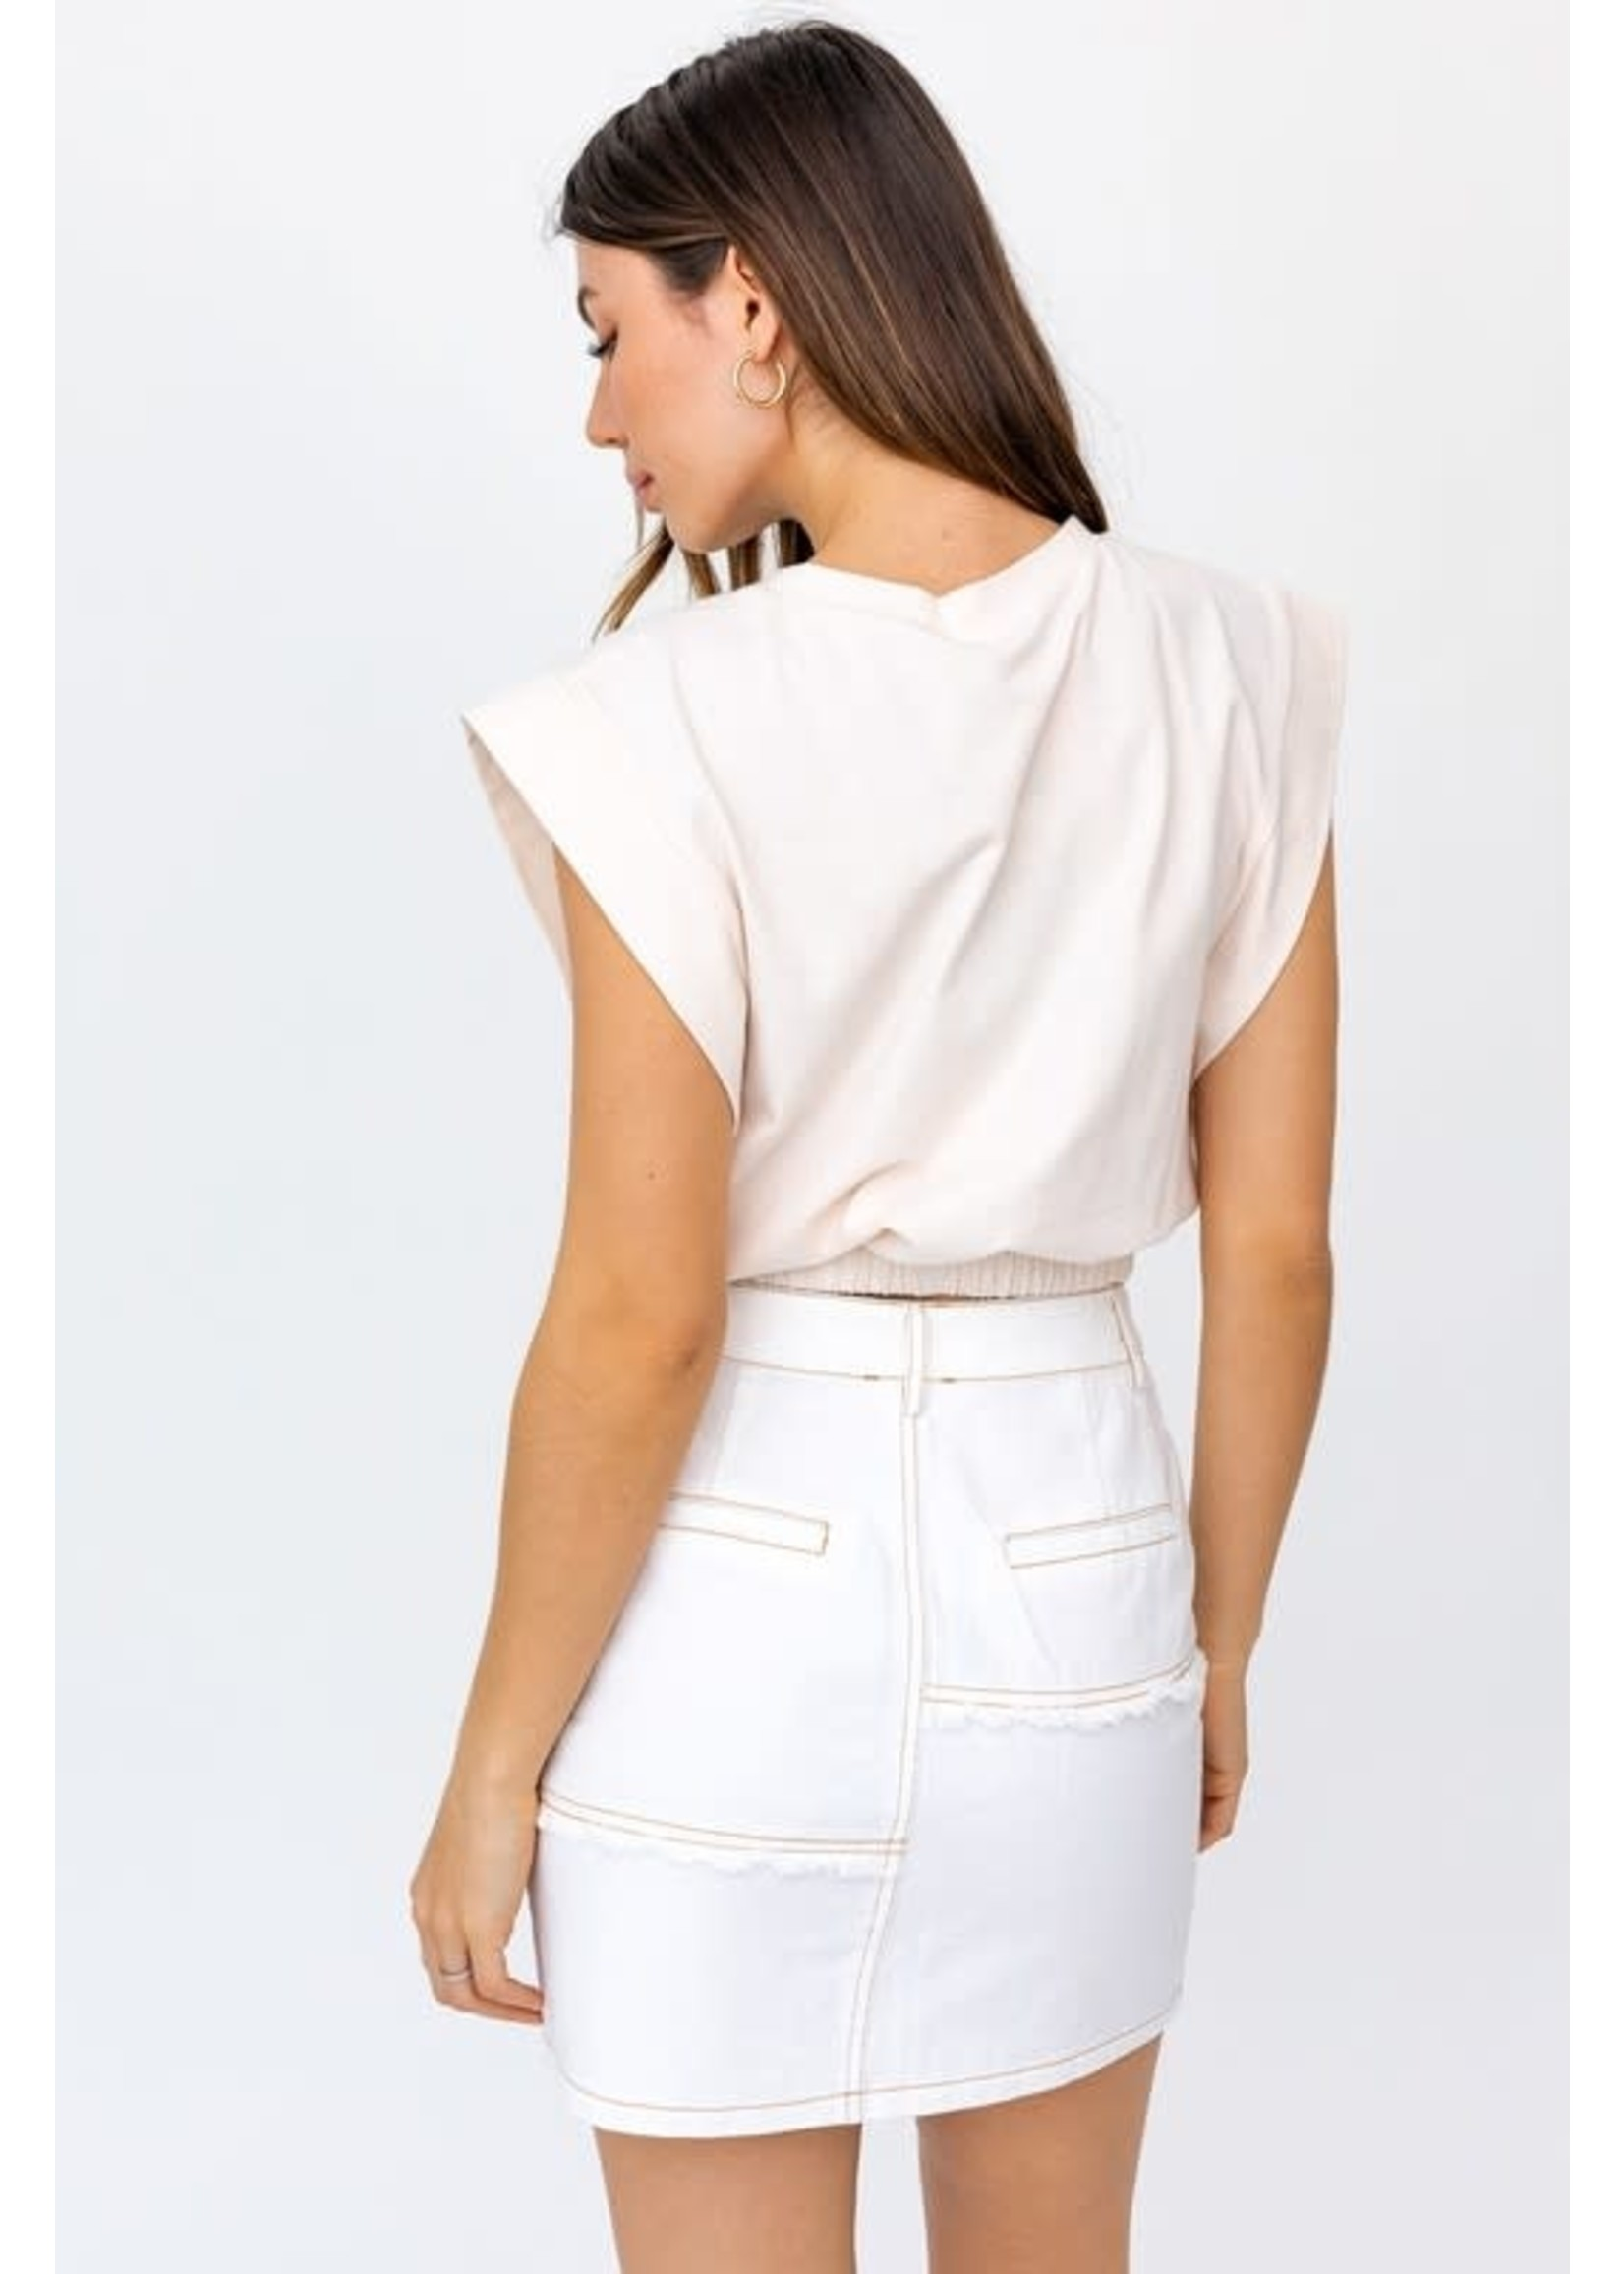 Le Lis Cropped Cinched Muscle Tee - KT3962